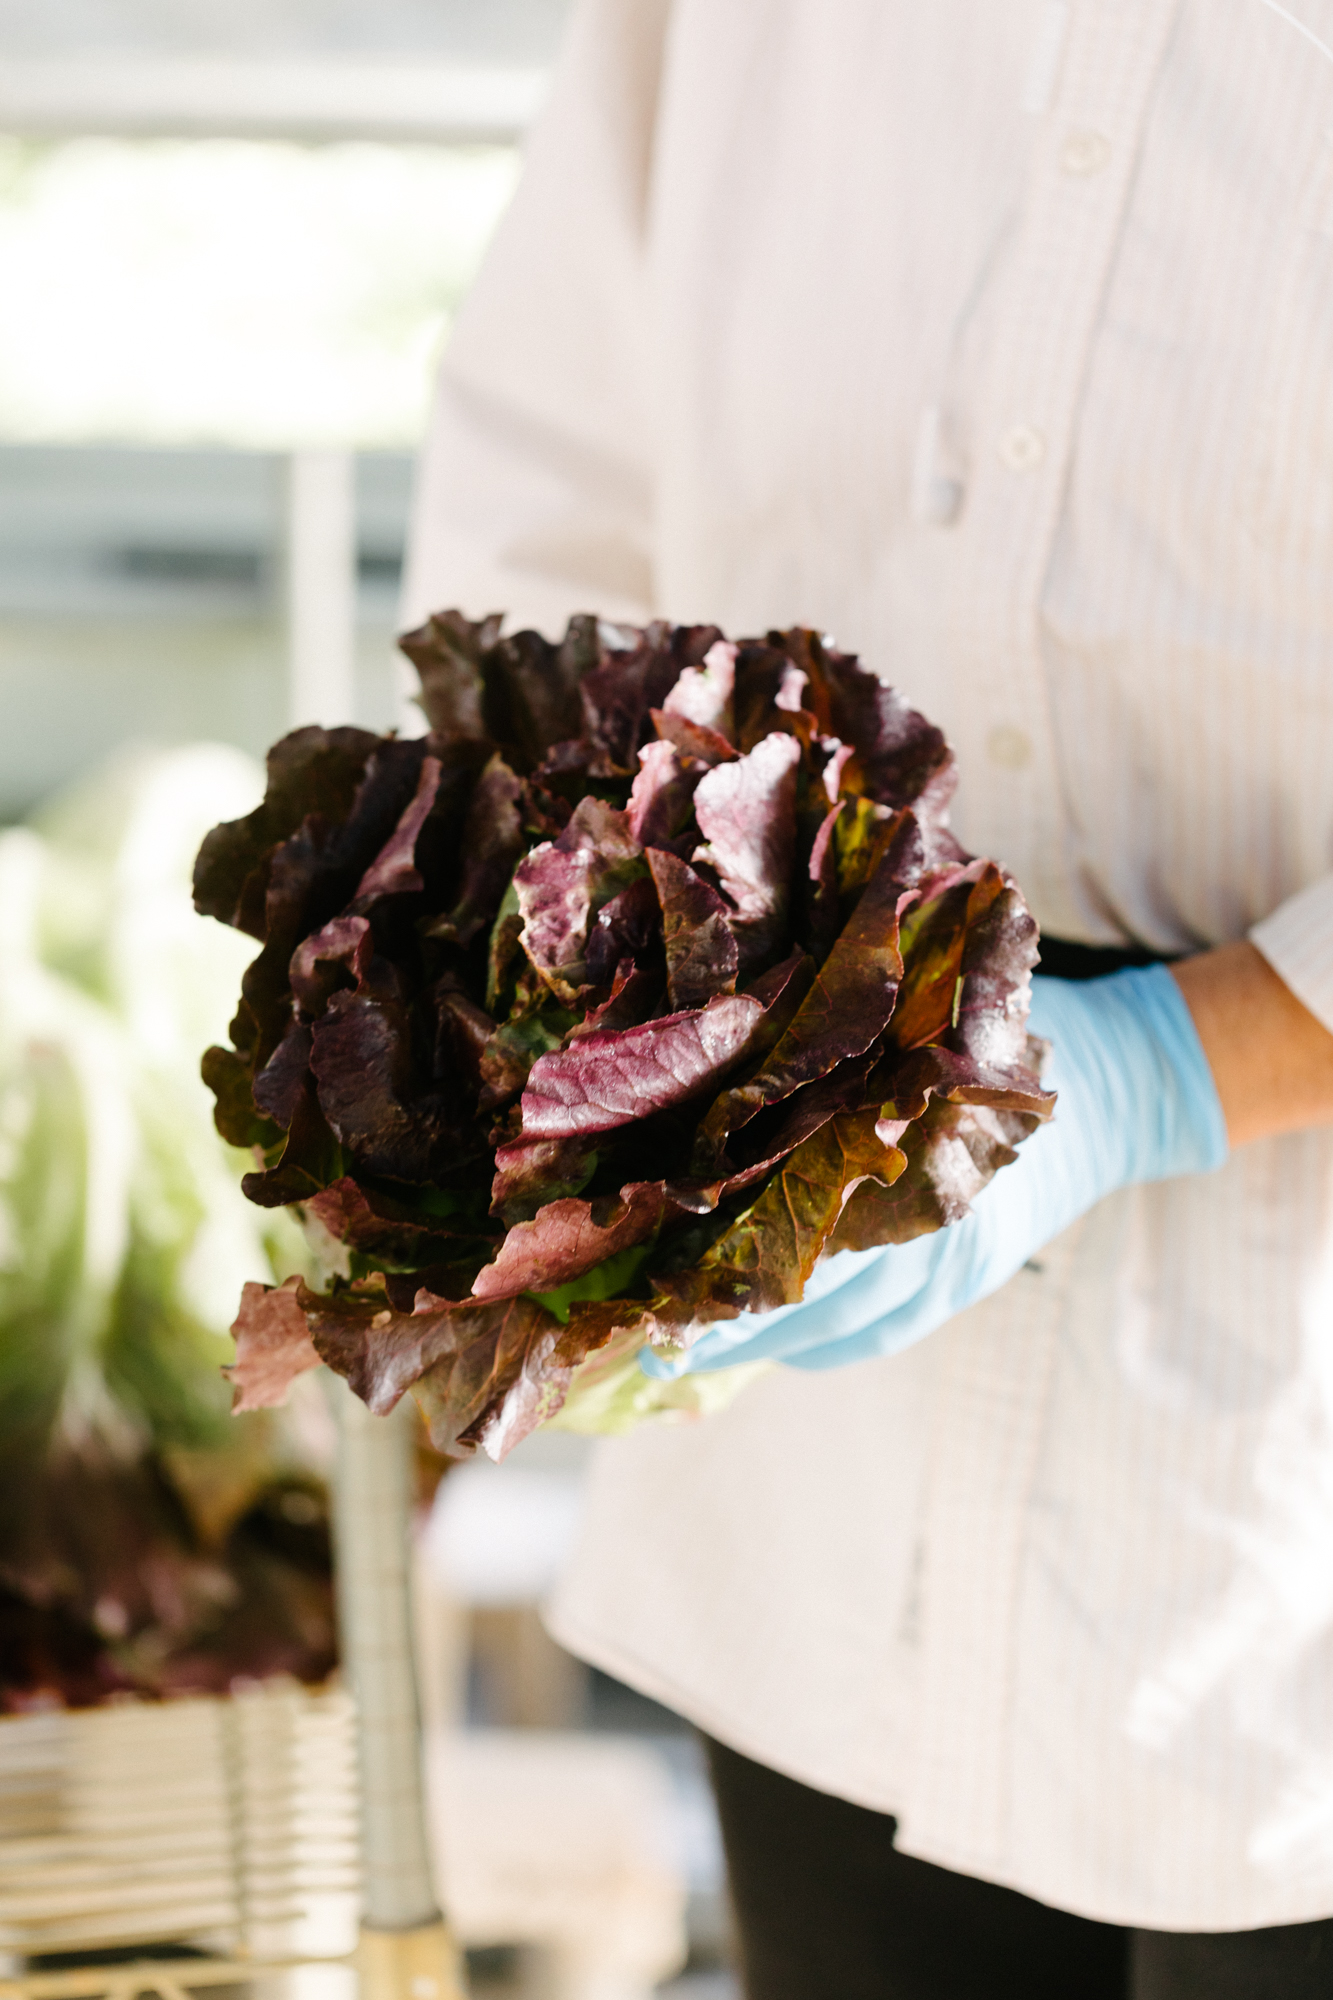 Jimena Peck Denver Lifestyle Editorial Photographer Native Hill Farm Lettuce